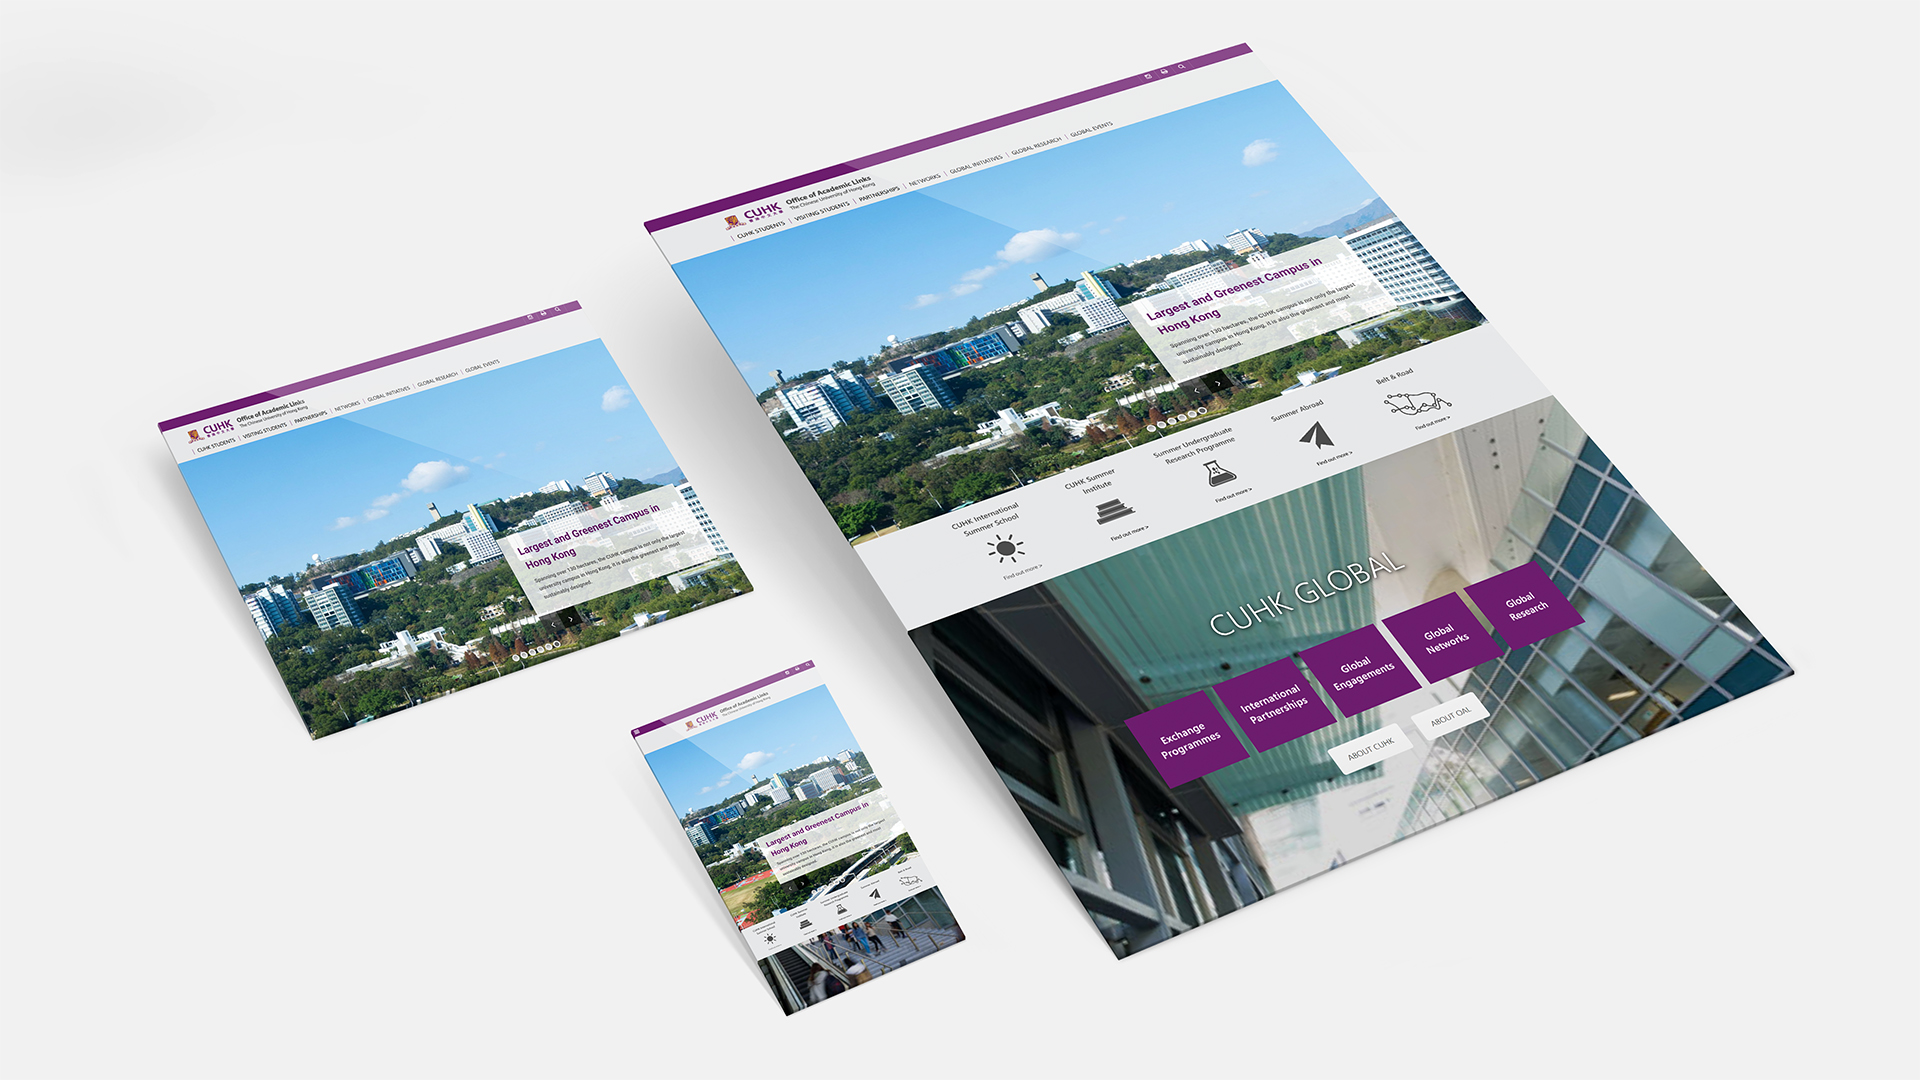 CUHK OAL Website